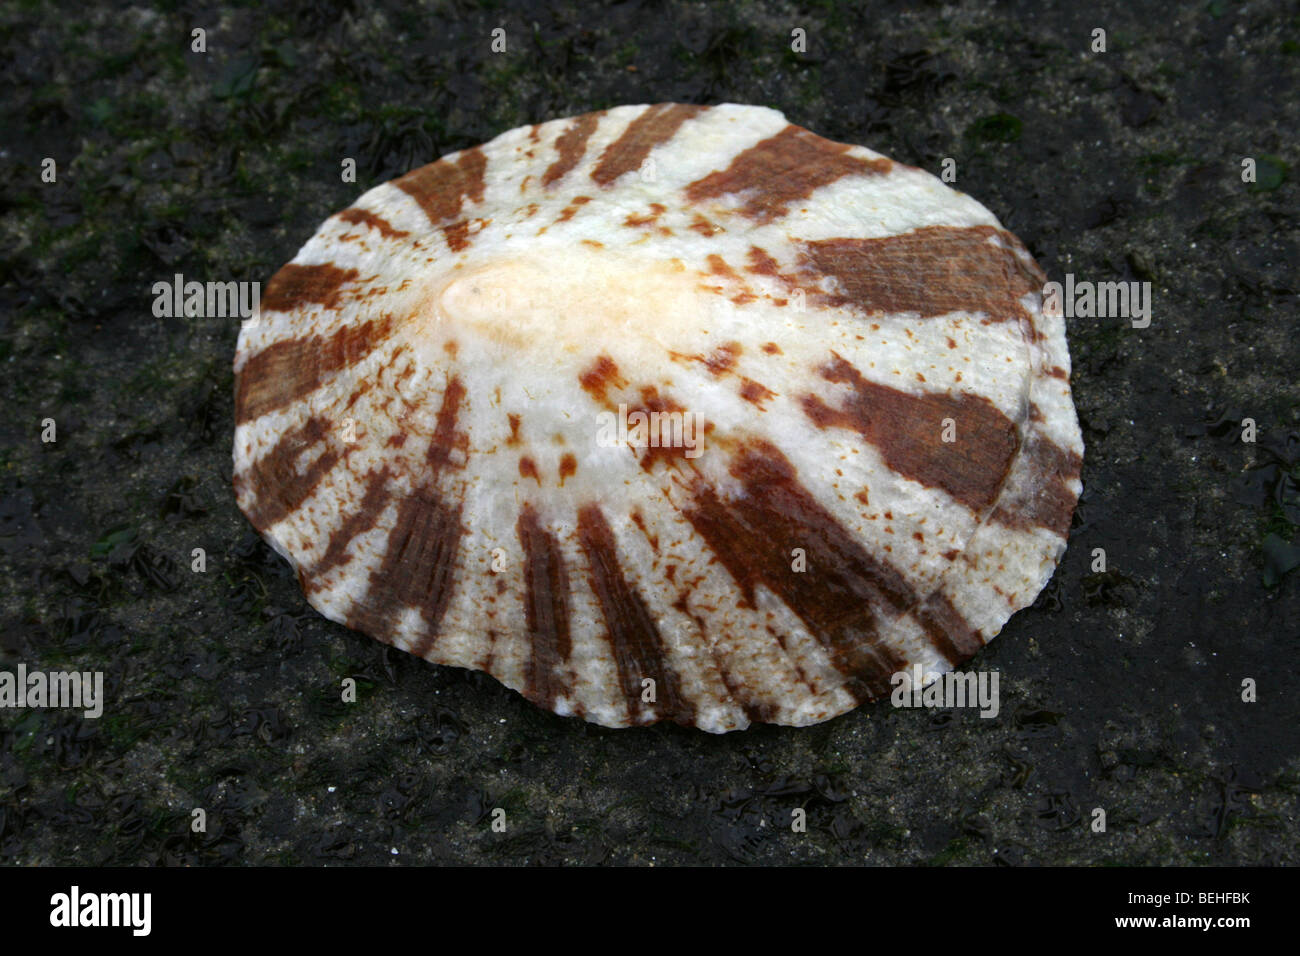 Giant Keyhole Limpet Fissurella maxima At Kei Mouth, Eastern Cape Province, South Africa Stock Photo